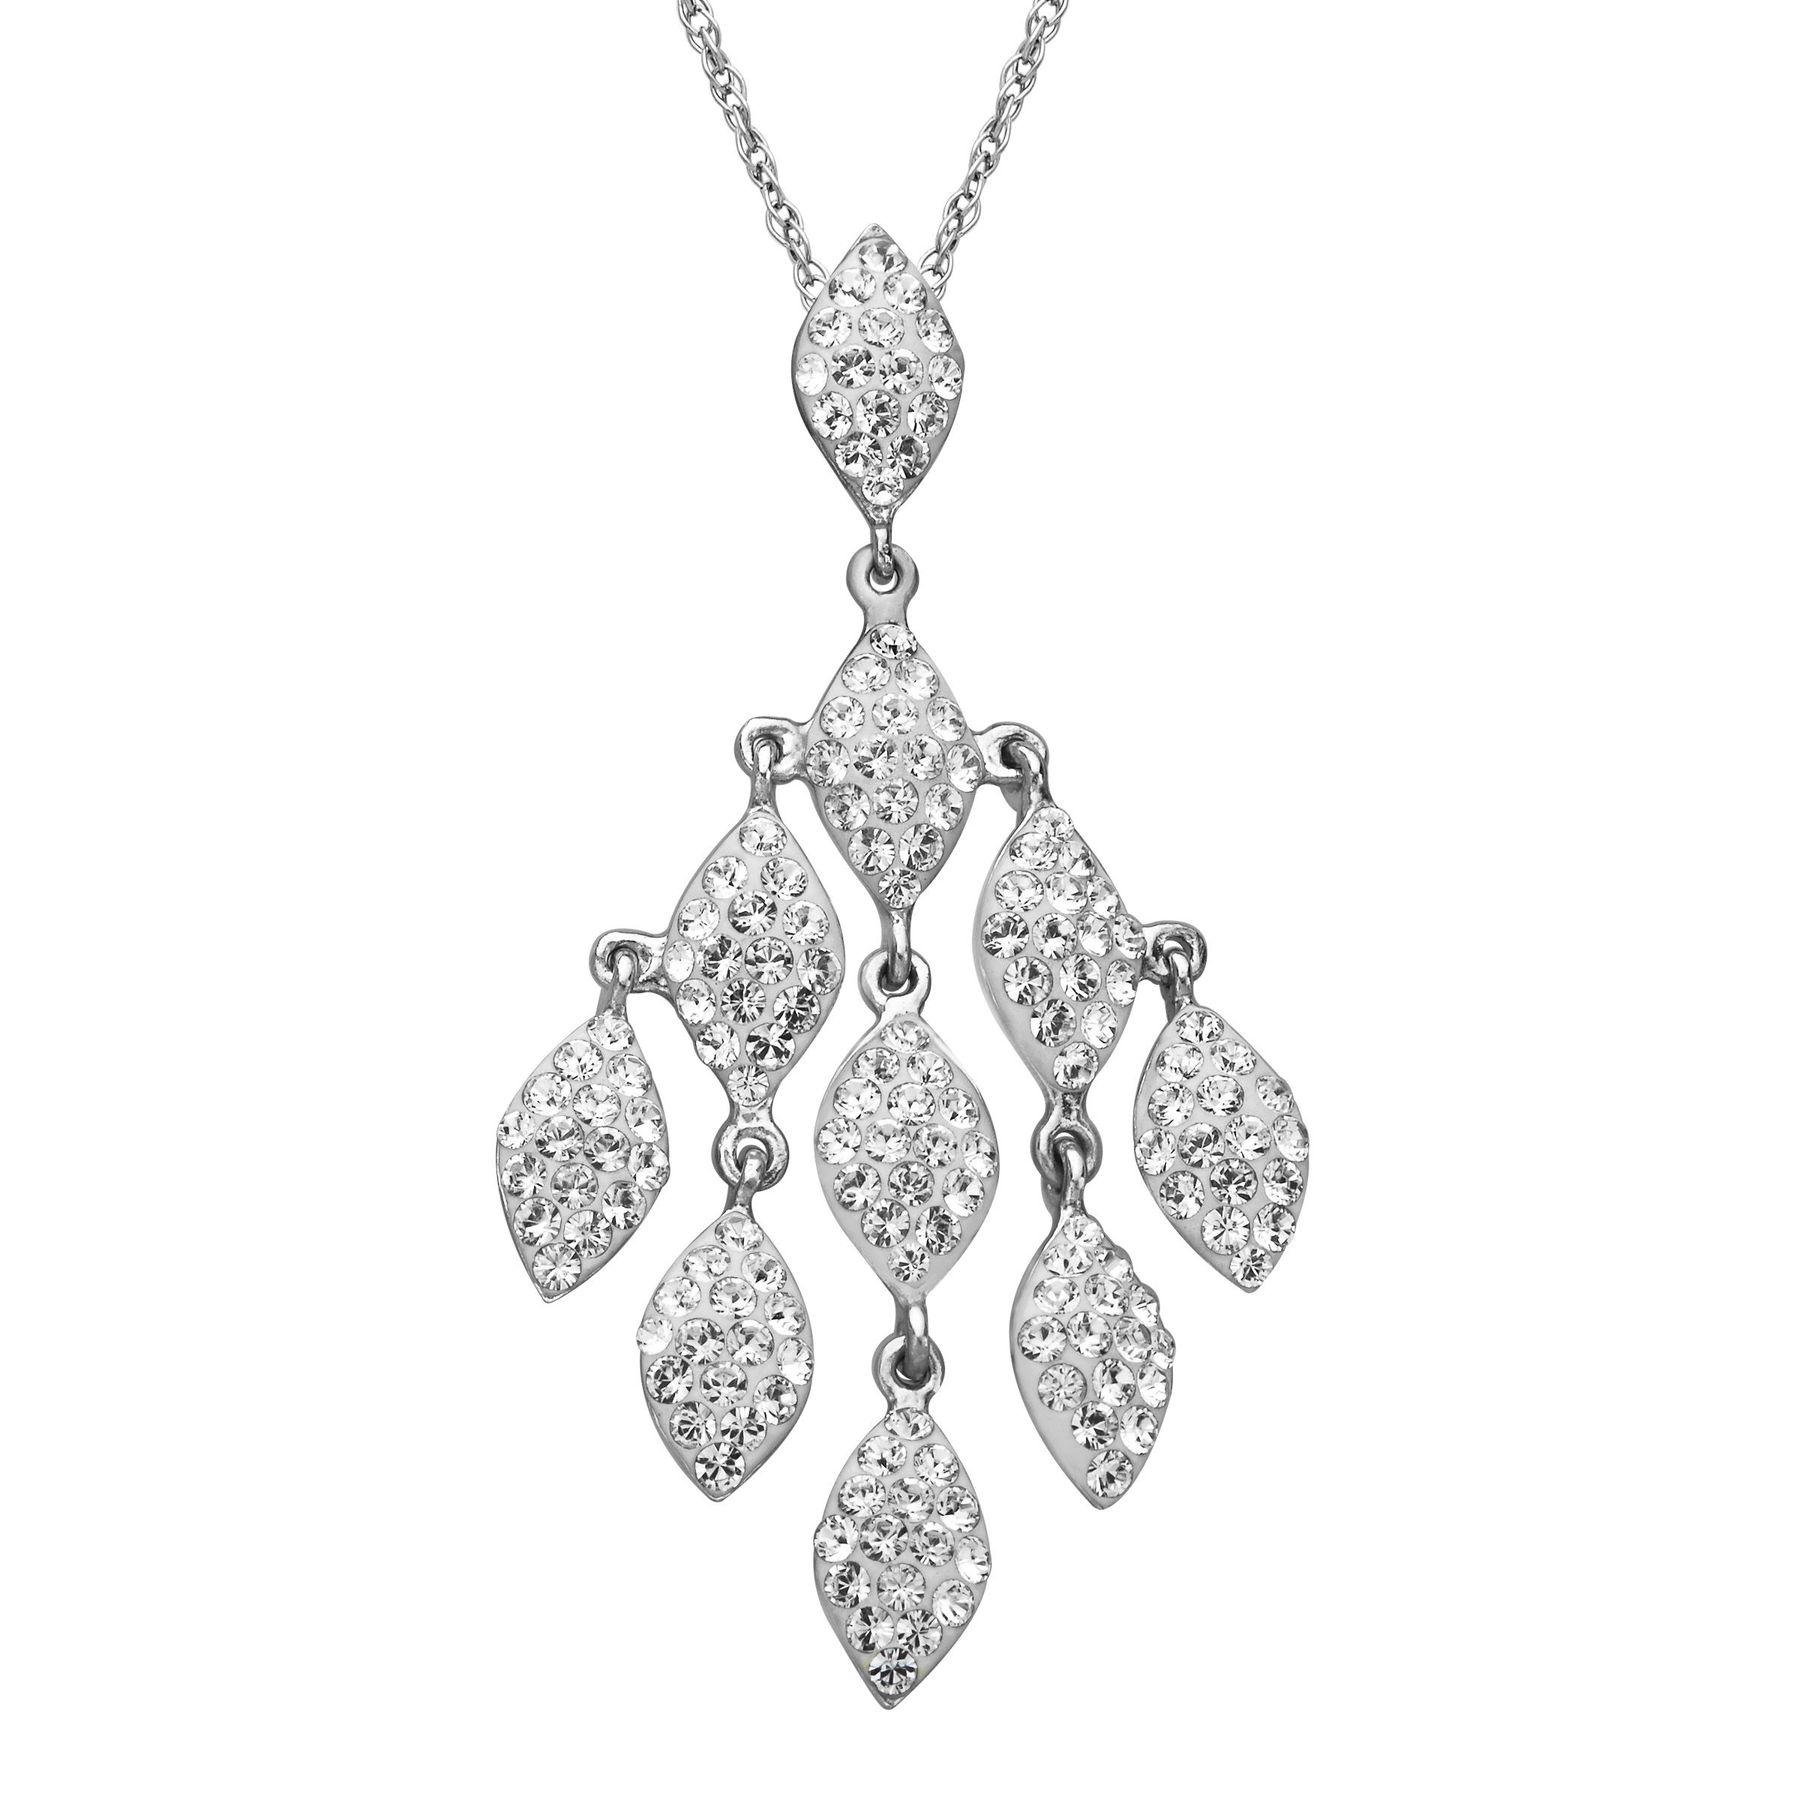 Saamarth Impex 925 Silver Plated Jewelry Accessories PG-132790